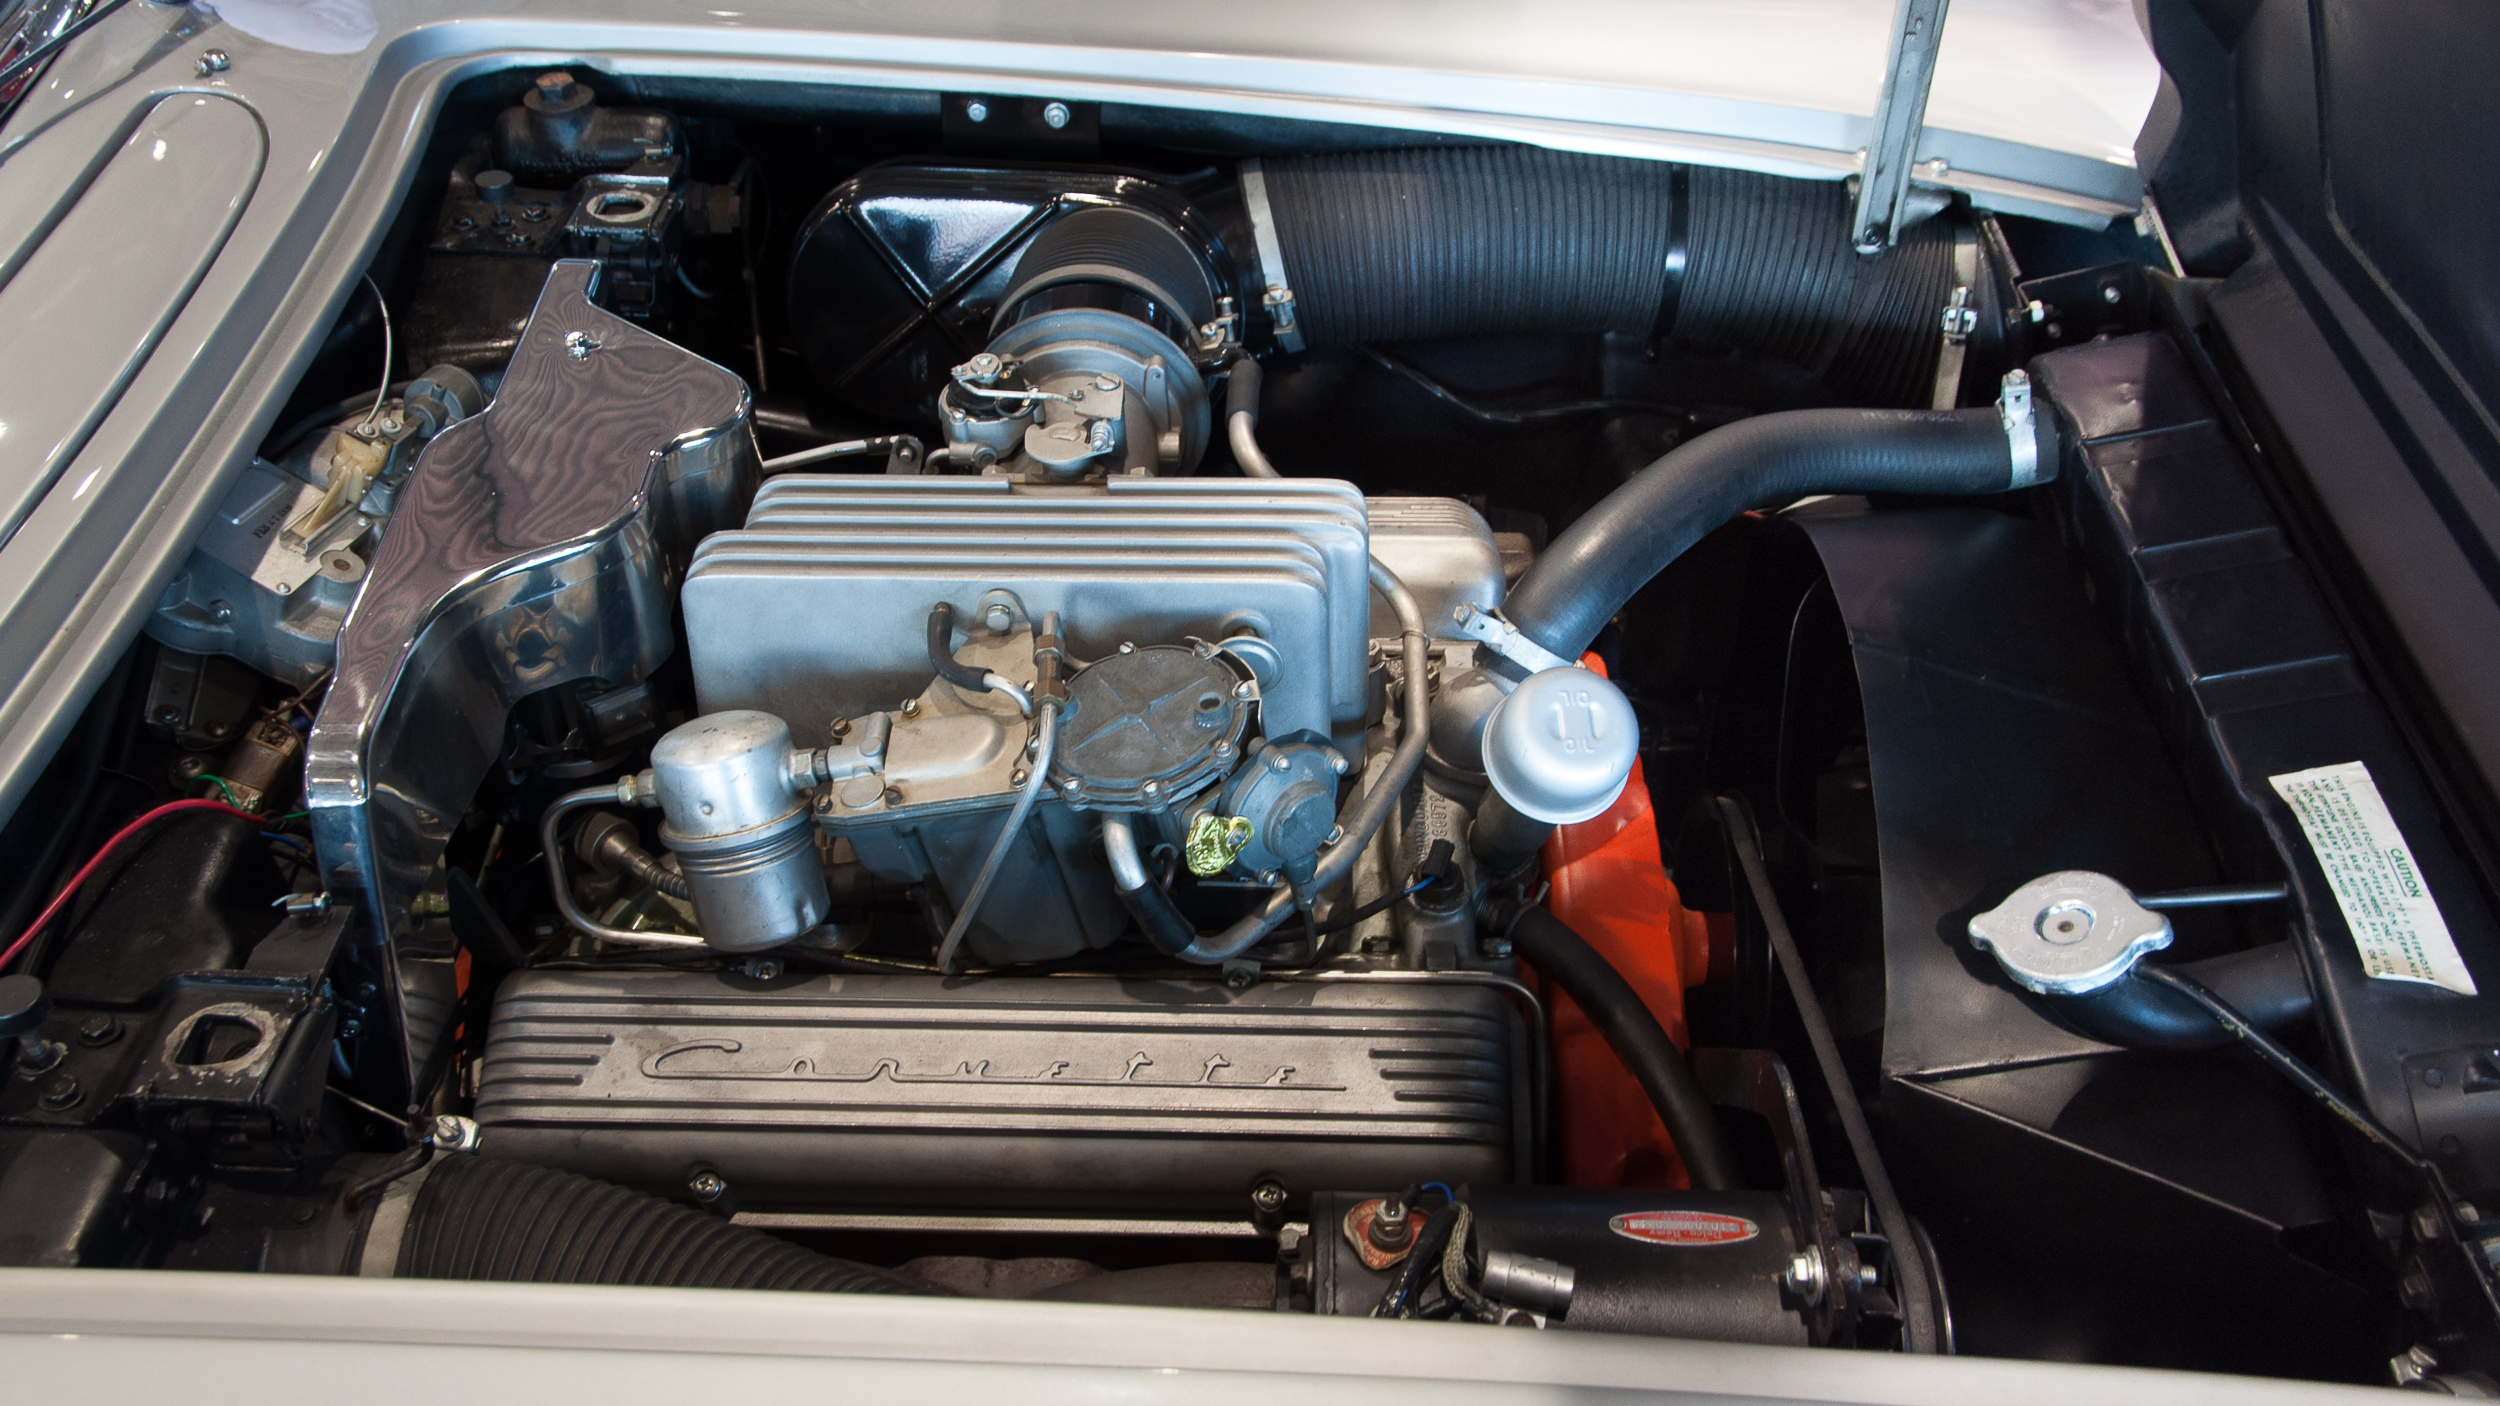 Chevrolet Corvette C V Cui Fuel Injection on 235 Chevy Engine Specs